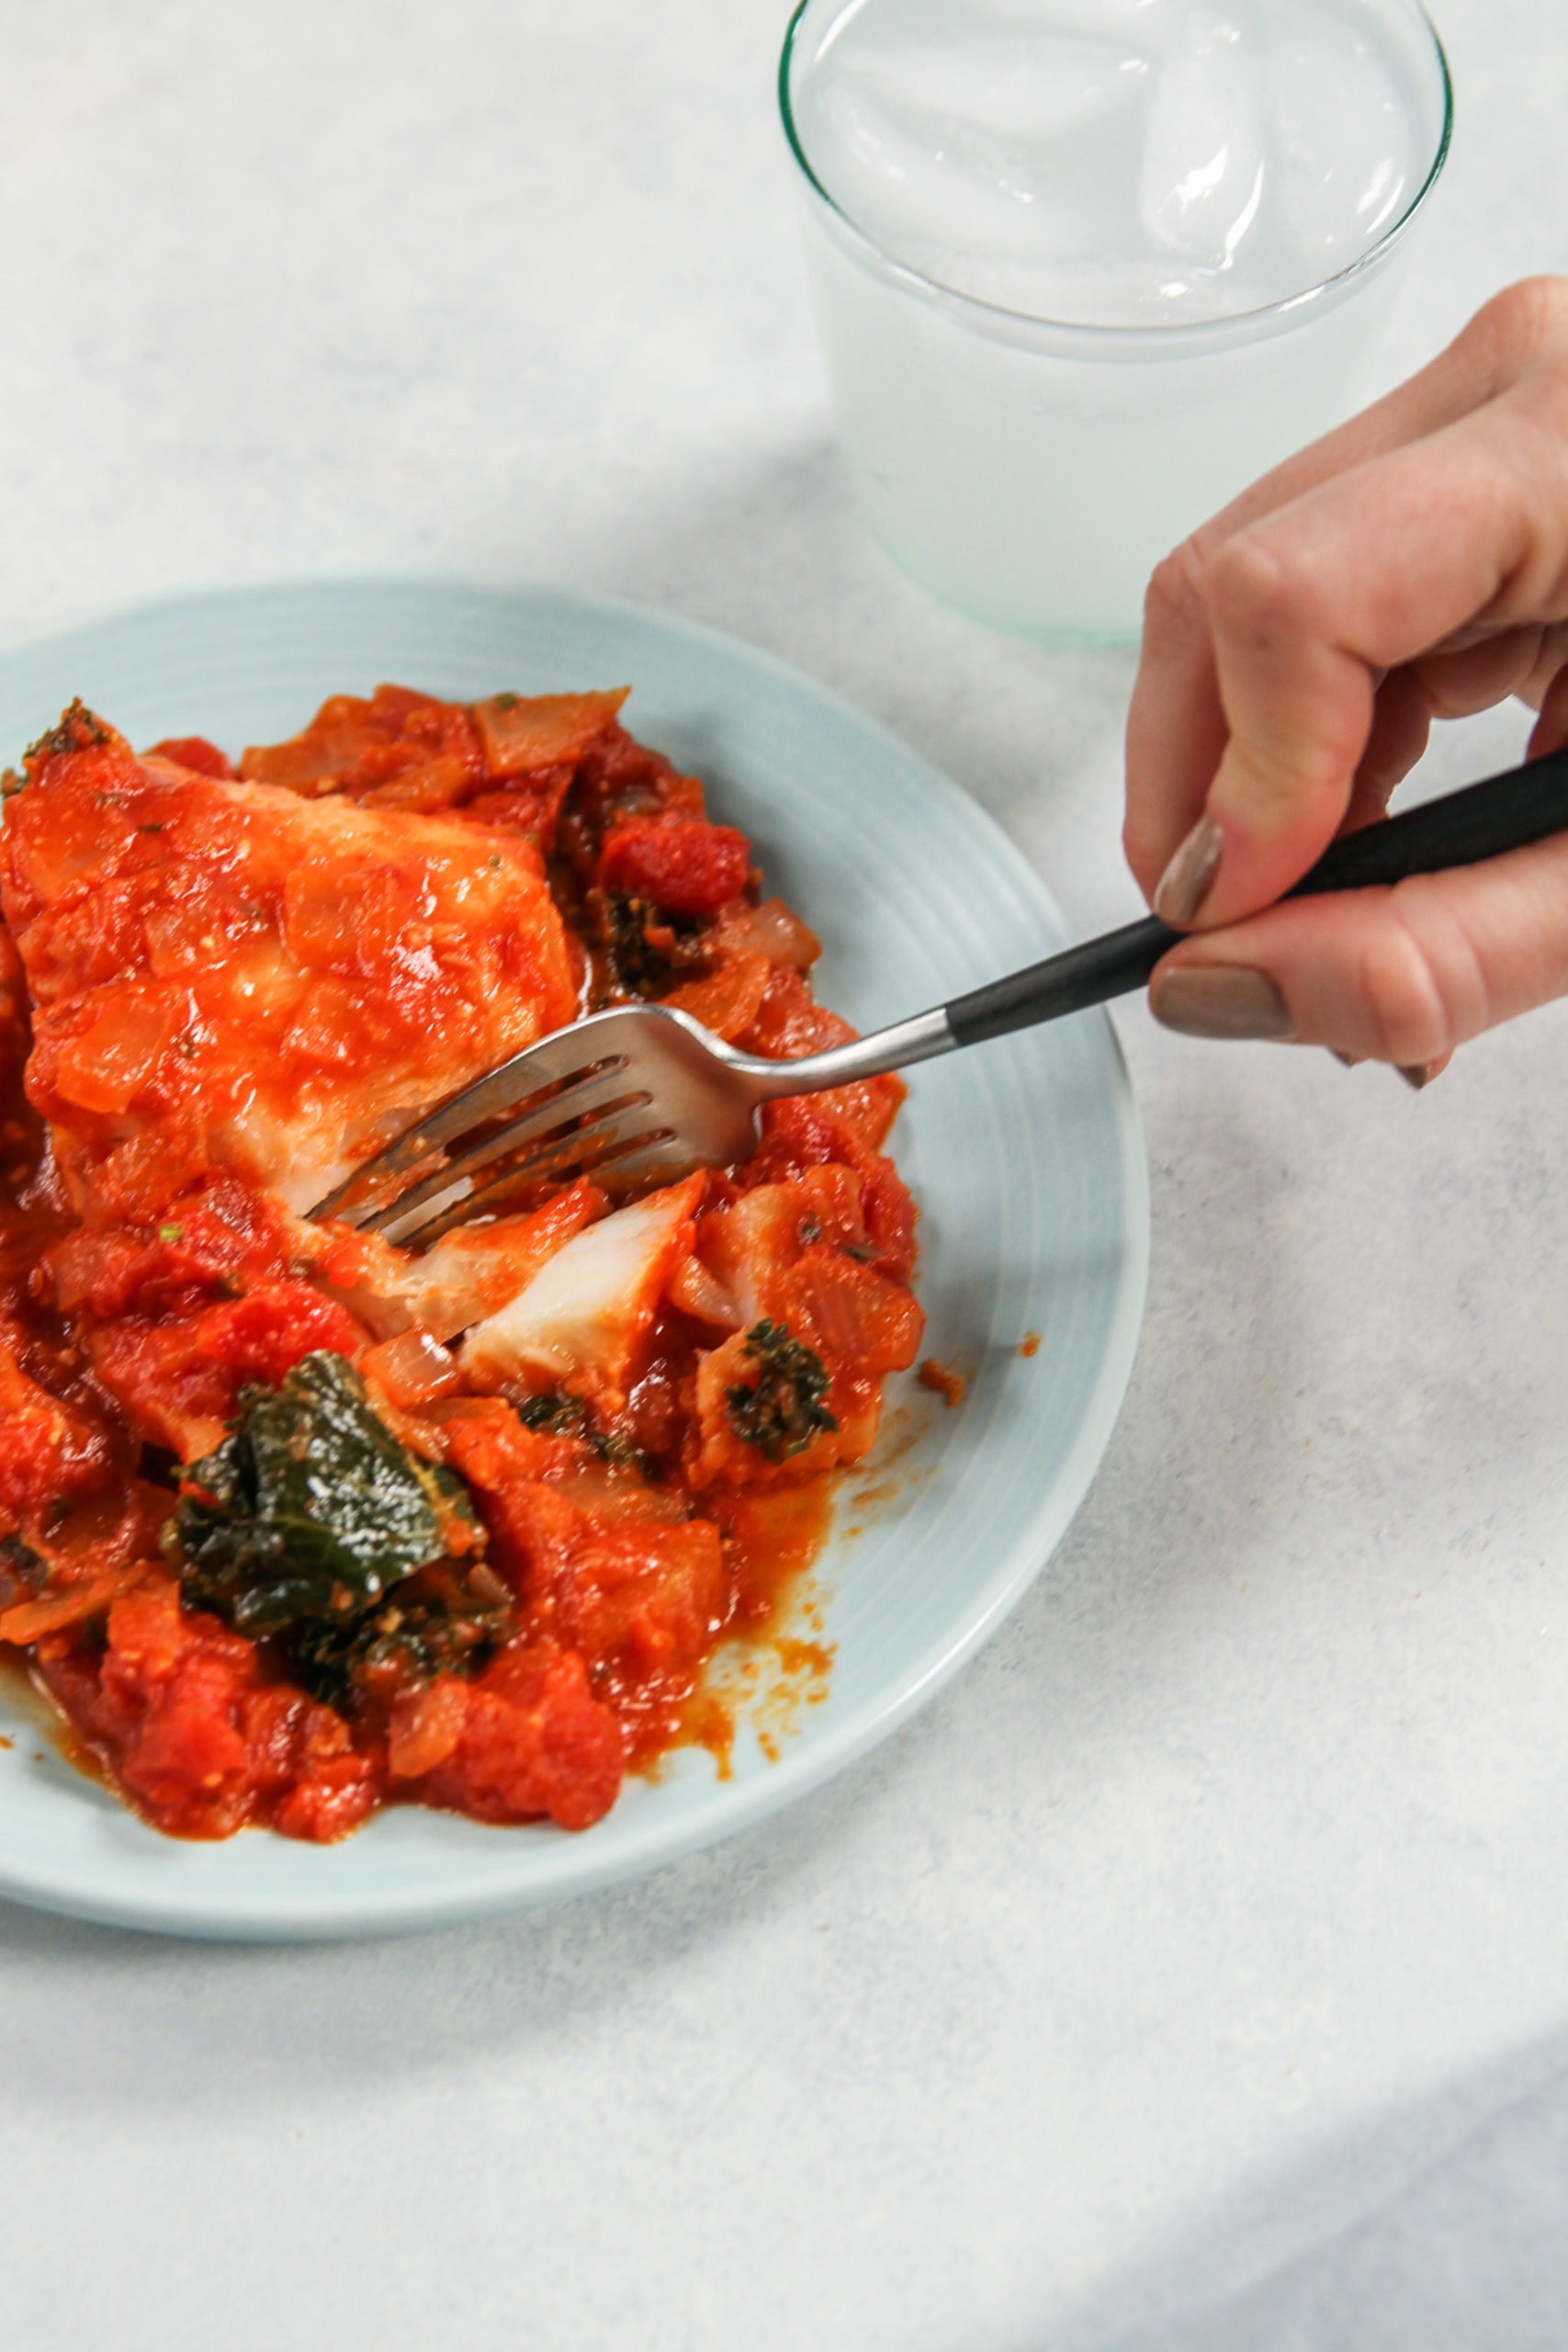 Taking a bite of white fish in tomato sauce